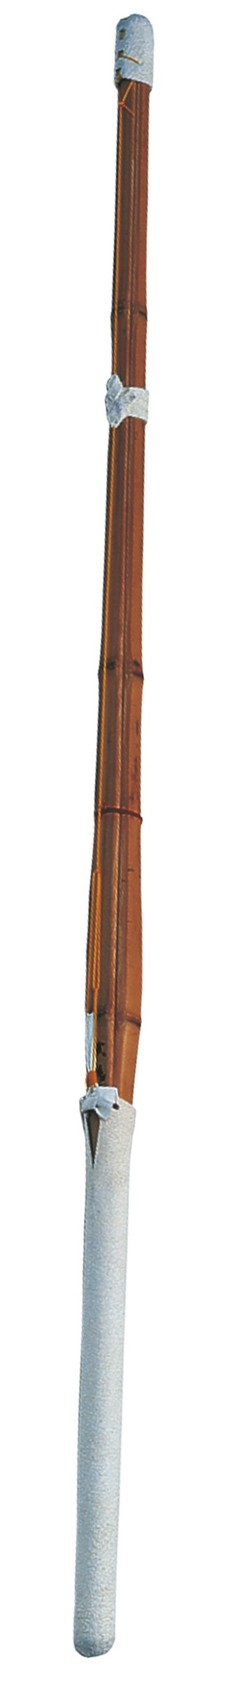 SHINAI ENFANT IMPORTATION (35) M40835